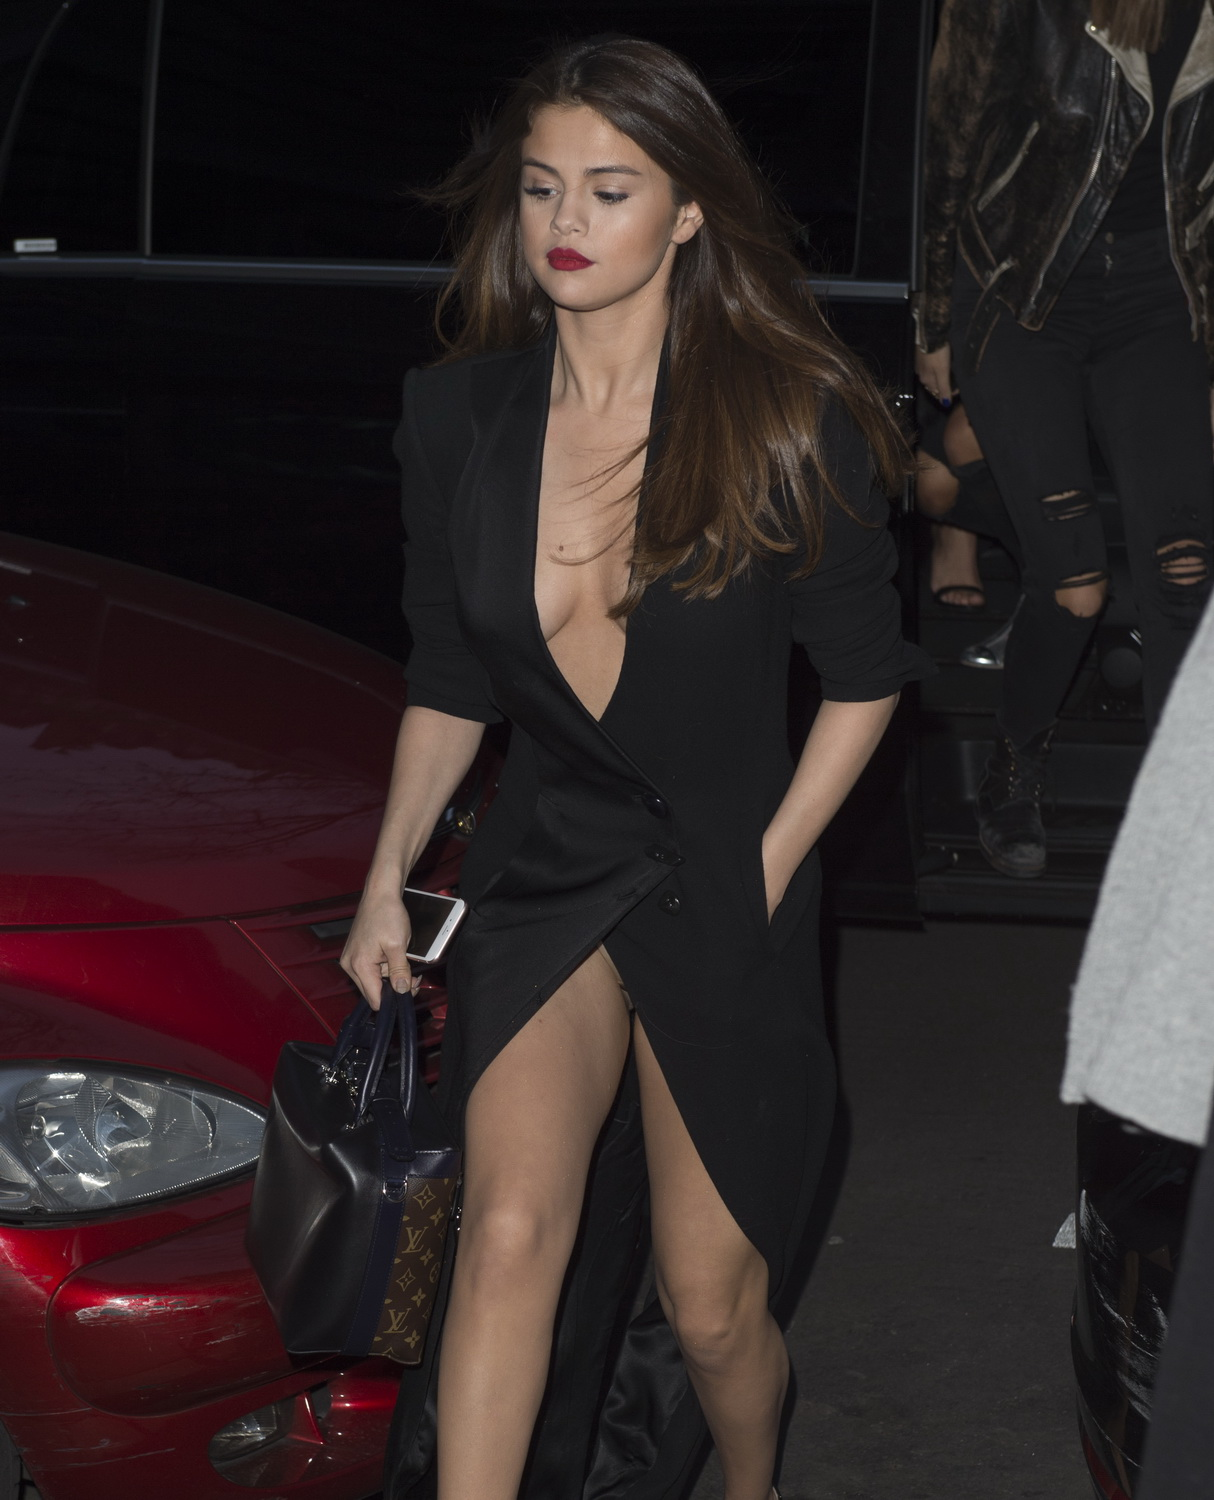 selena-gomez-cleavage-and-upskirt-in-paris-54